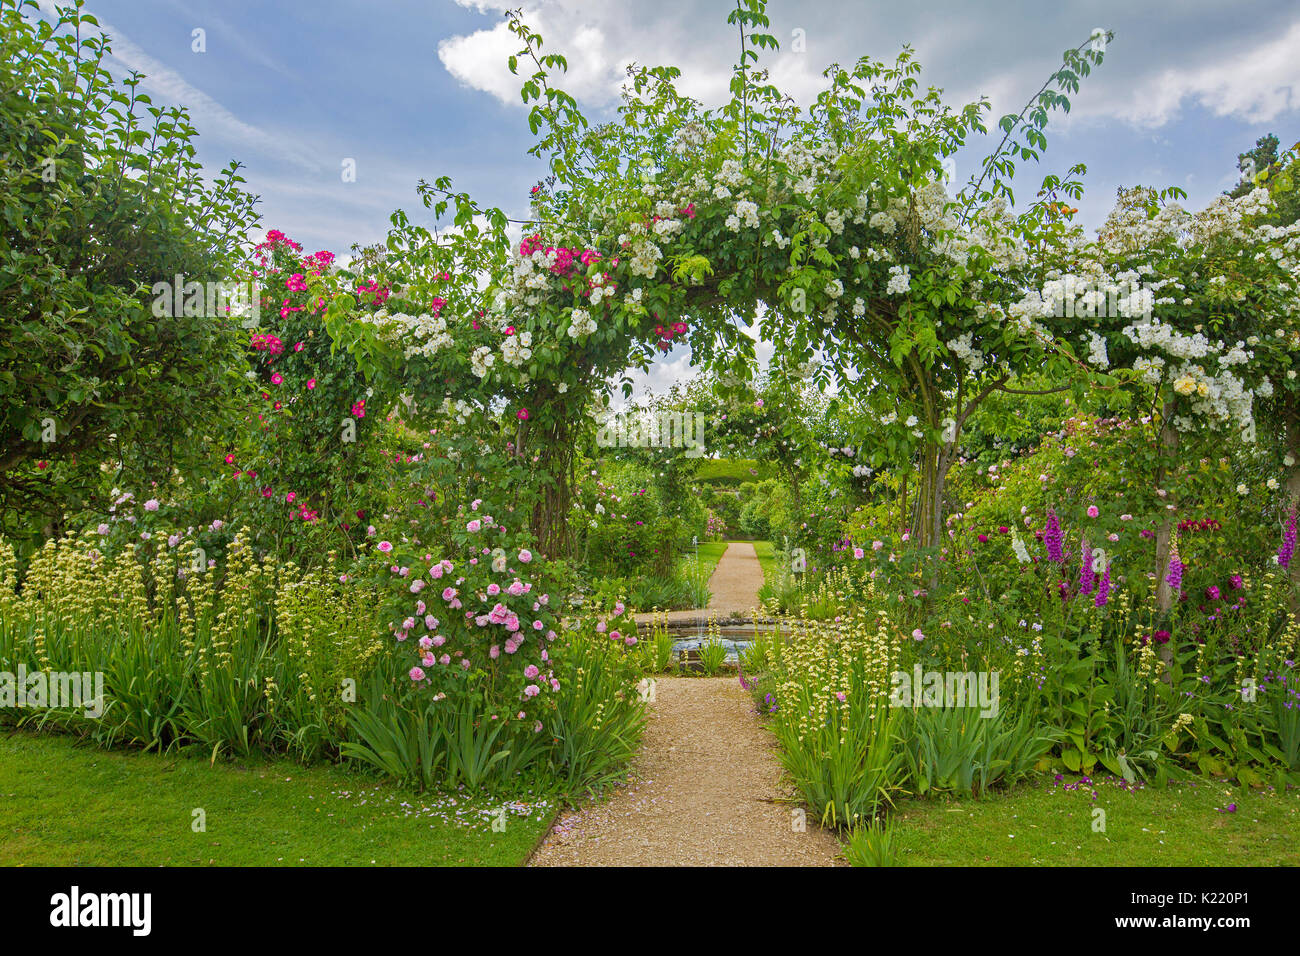 Extensive & stunning English garden with circular pond, herbaceous borders, and pathway leading through archway with climbing roses at Rousham gardens - Stock Image